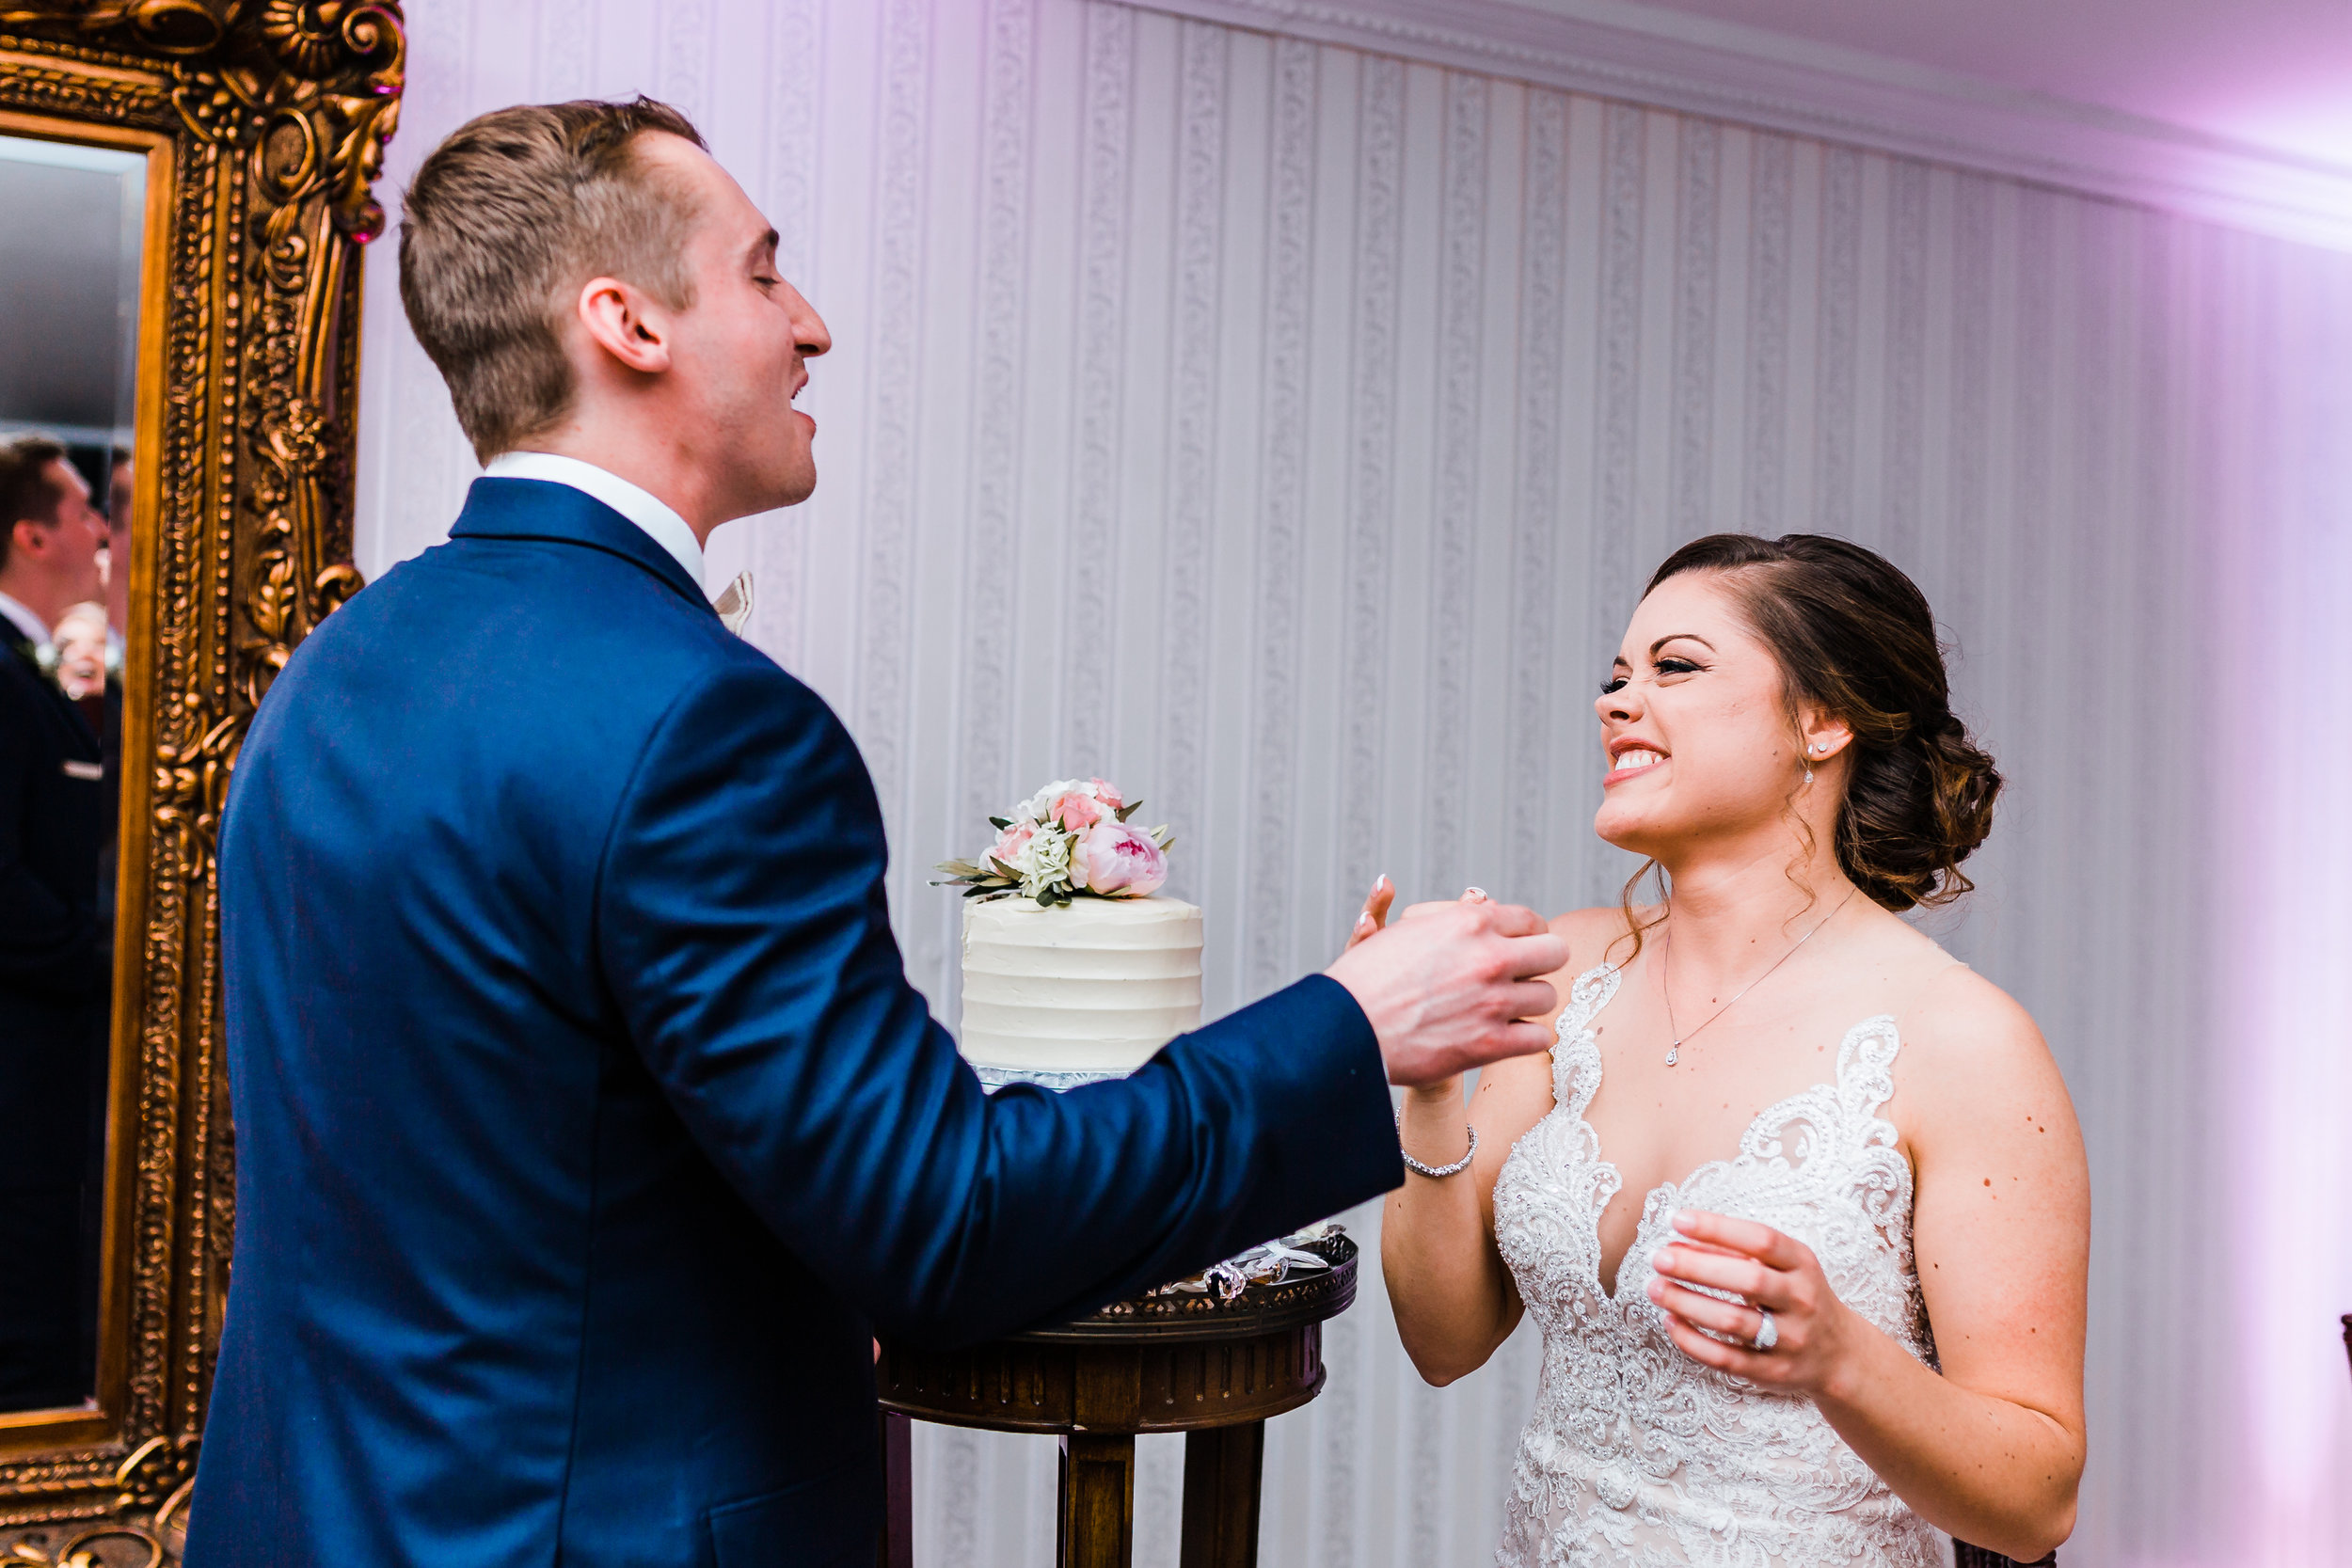 bride and groom laughing after feeding each other cake that their carroll county maryland wedding - photographer